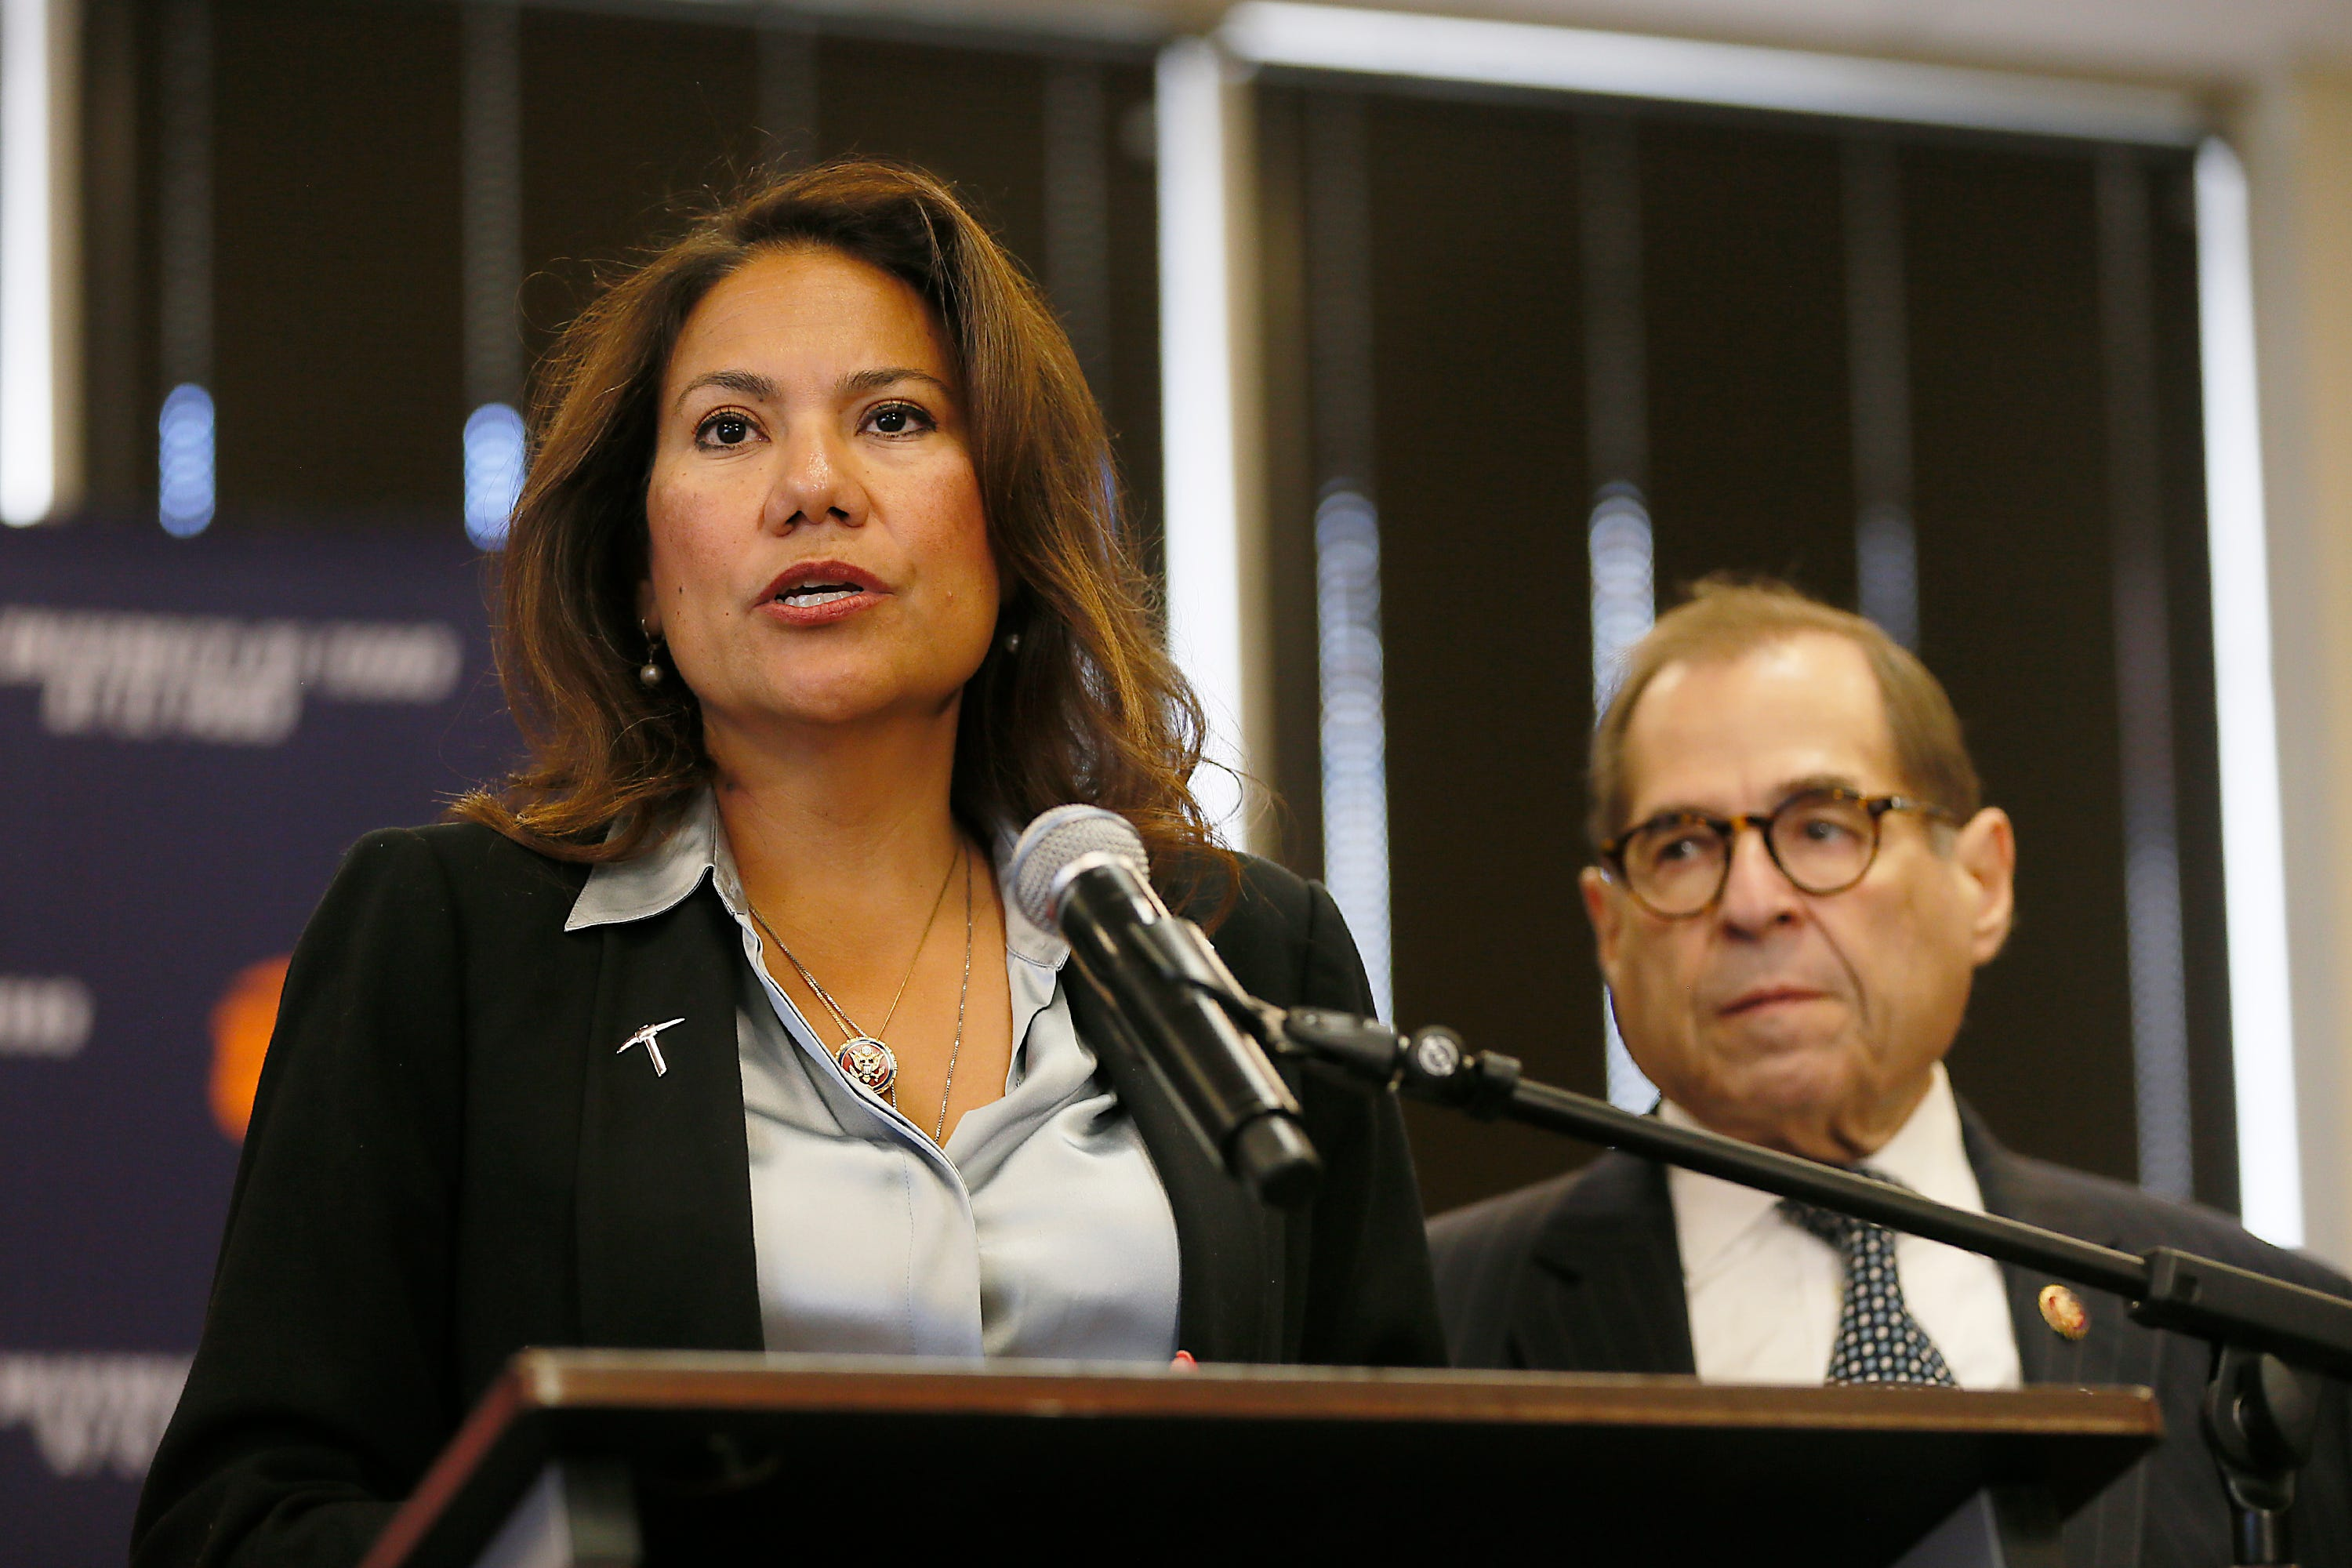 El Paso Congresswoman Veronica Escobar picked for freshman leadership position